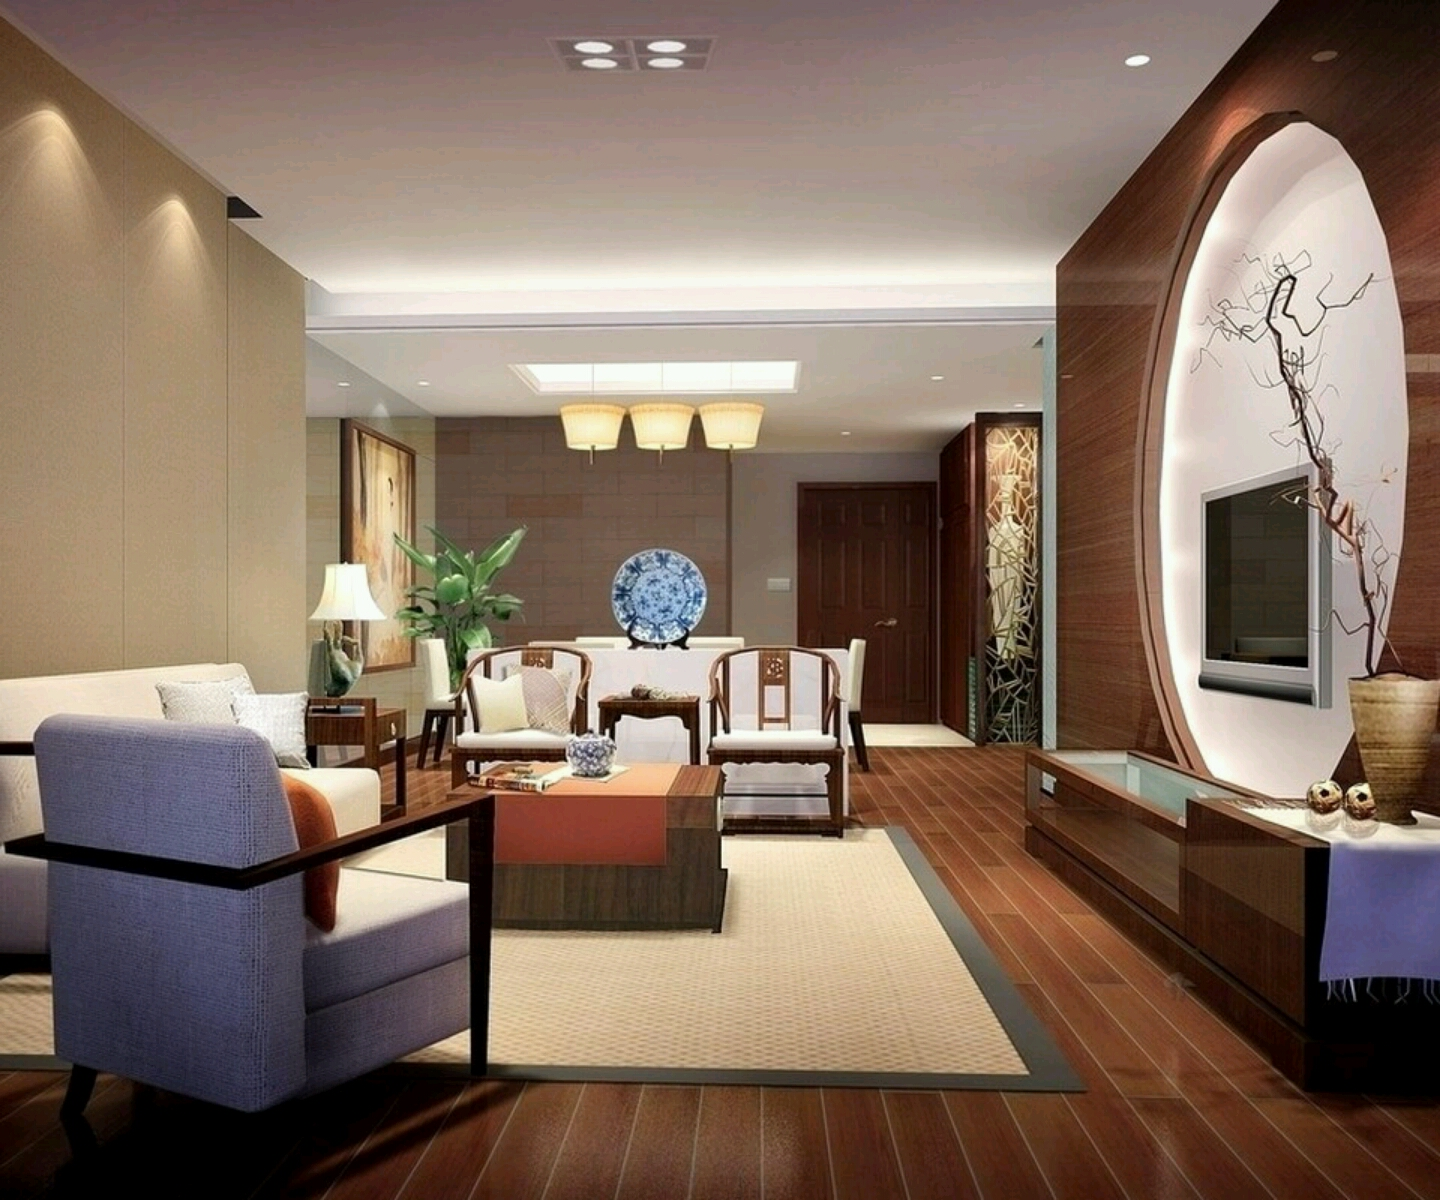 12 Picturesque Small Living Room Design: Luxury Homes Interior Decoration Living Room Designs Ideas